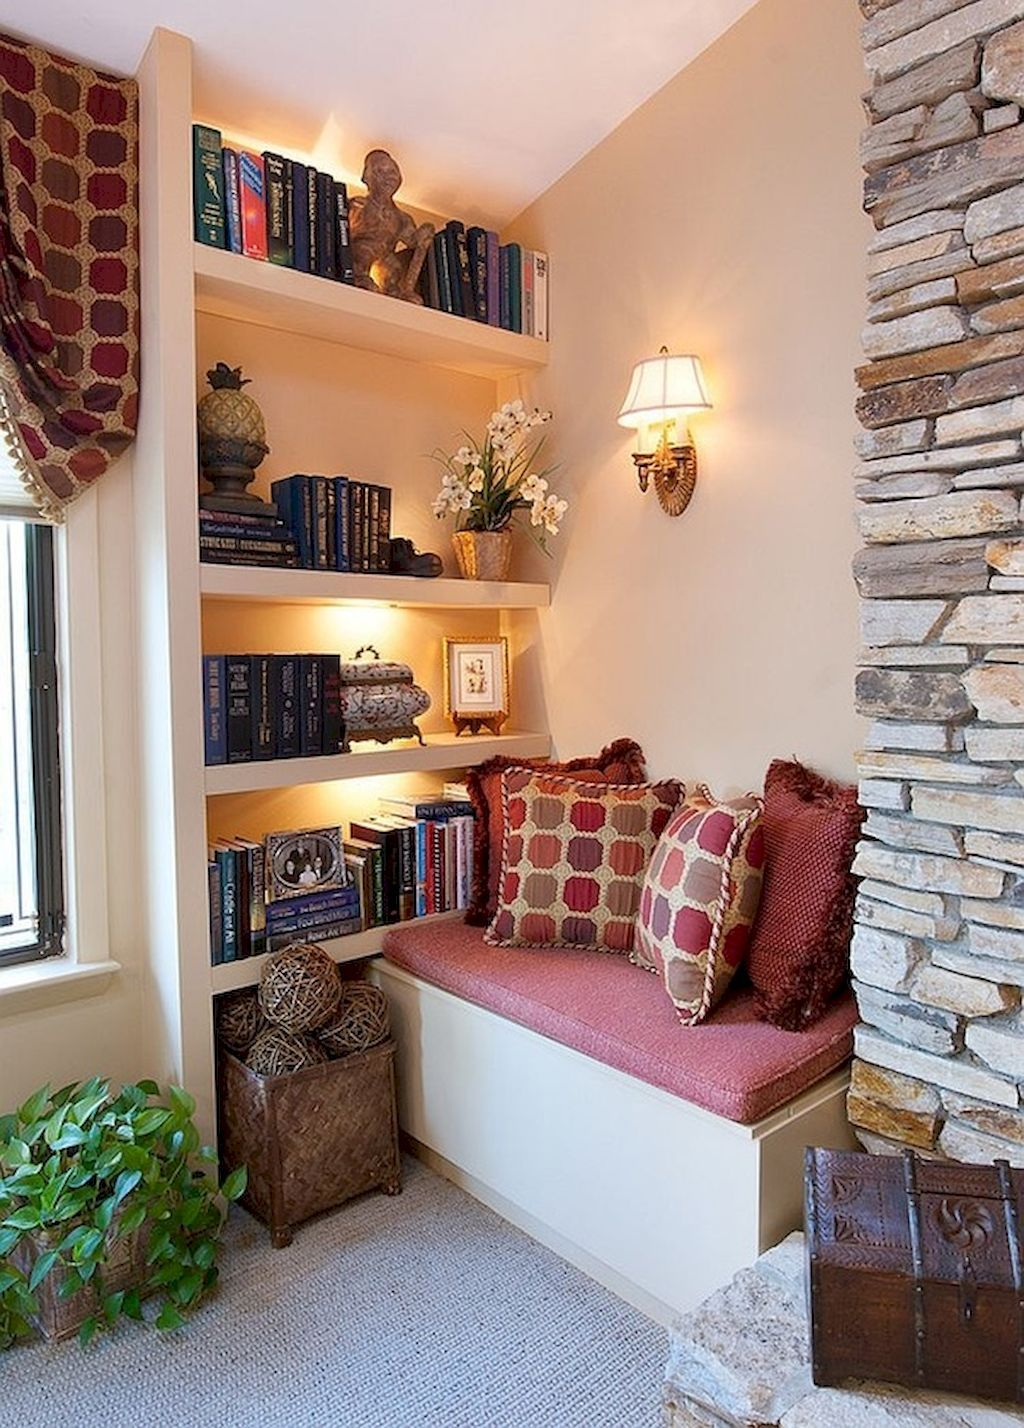 50 Relaxing And Cozy Reading Corner Decor Ideas Decorationroom